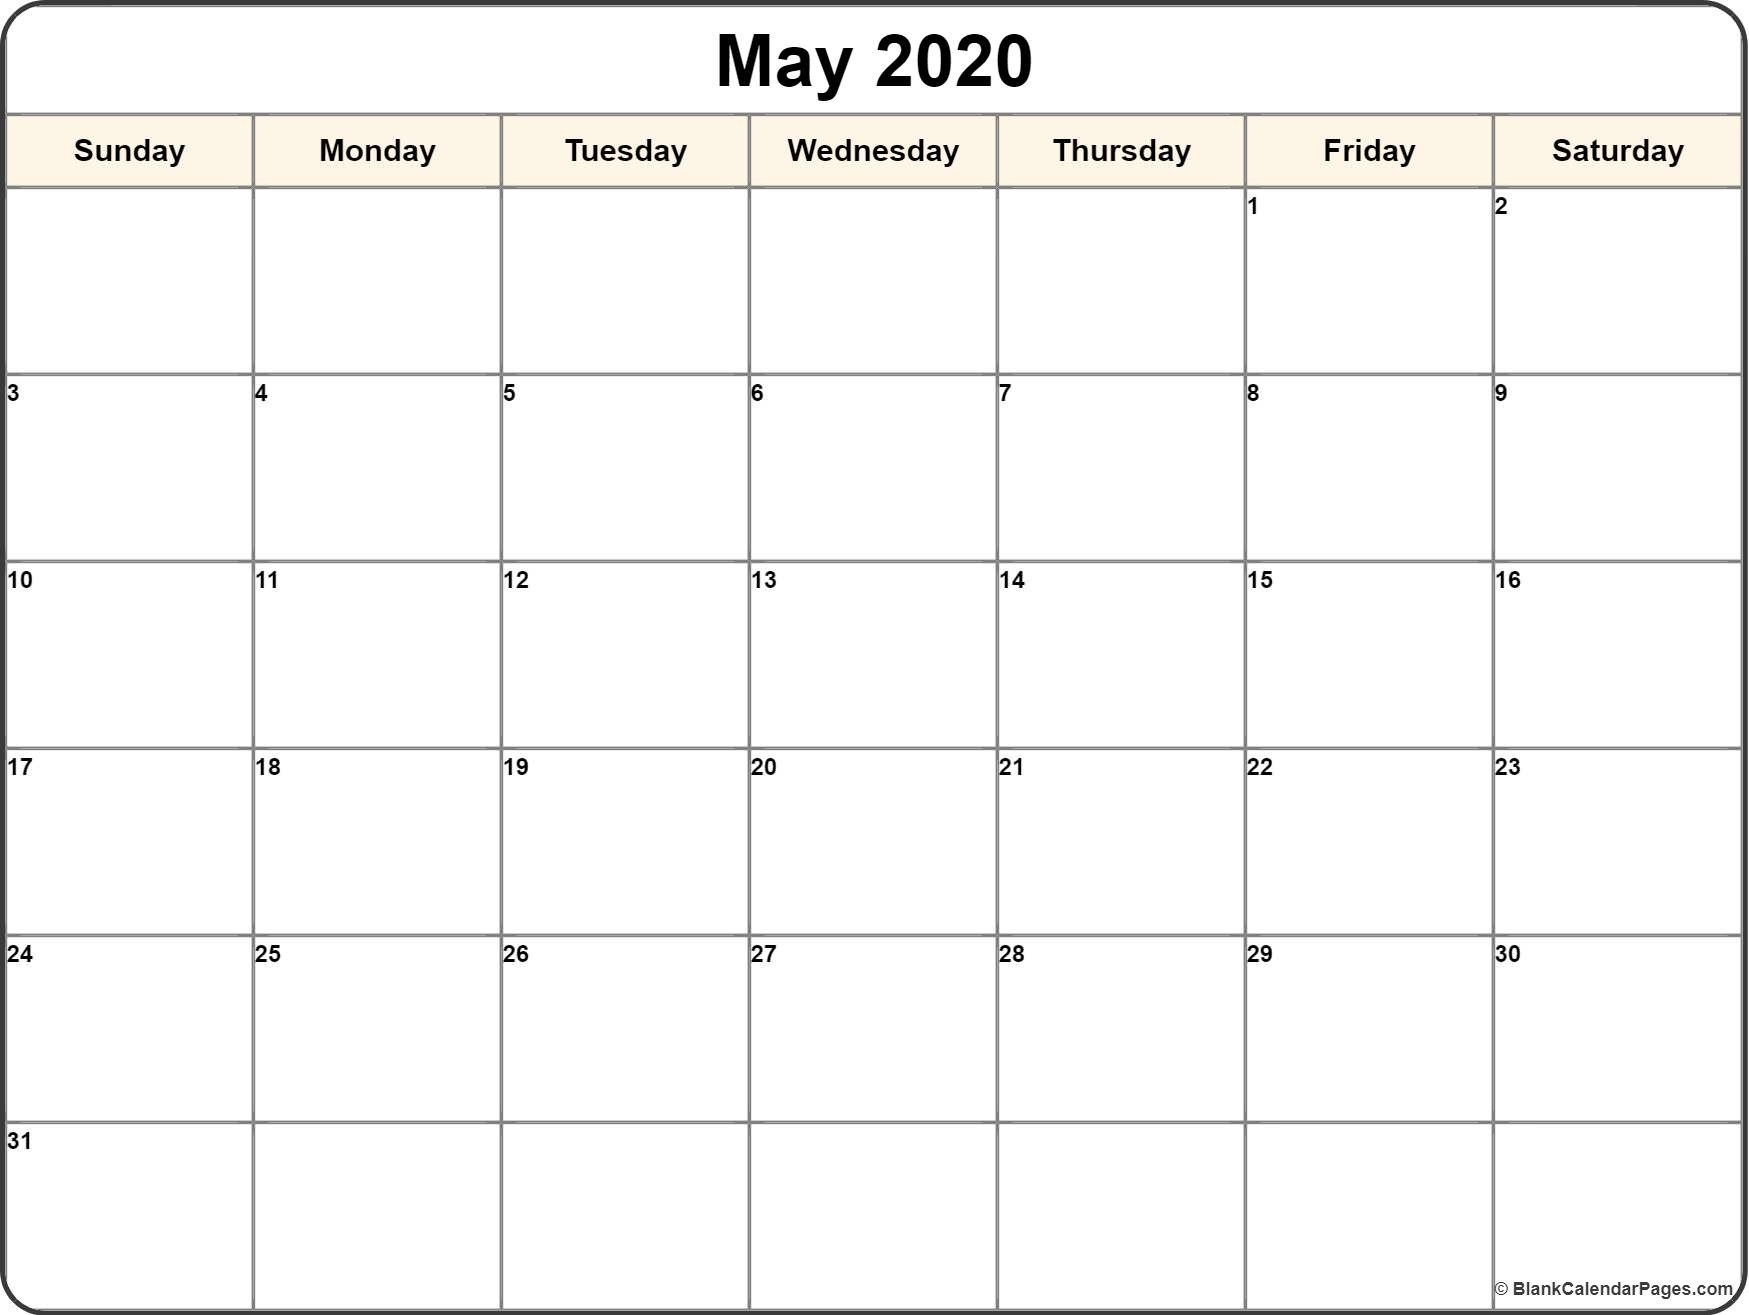 May 2020 Calendar | Free Printable Monthly Calendars-2020 Printable Calendar Templates Free